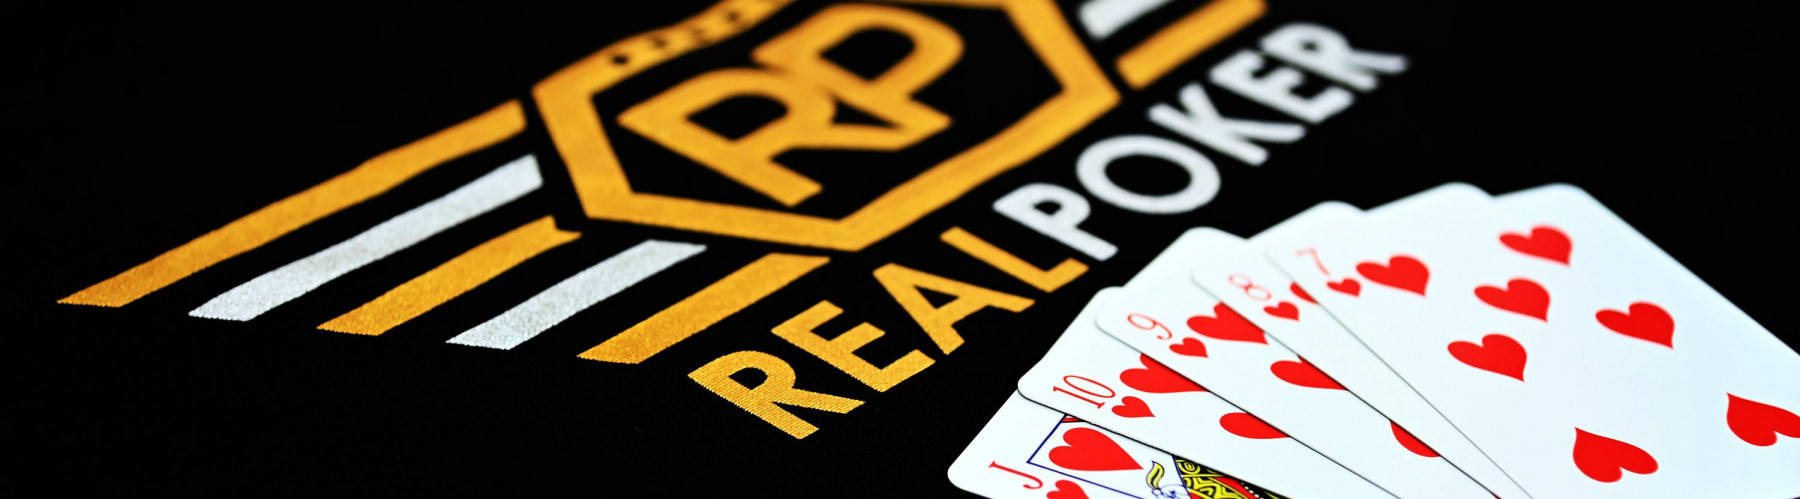 How to play safe online poker